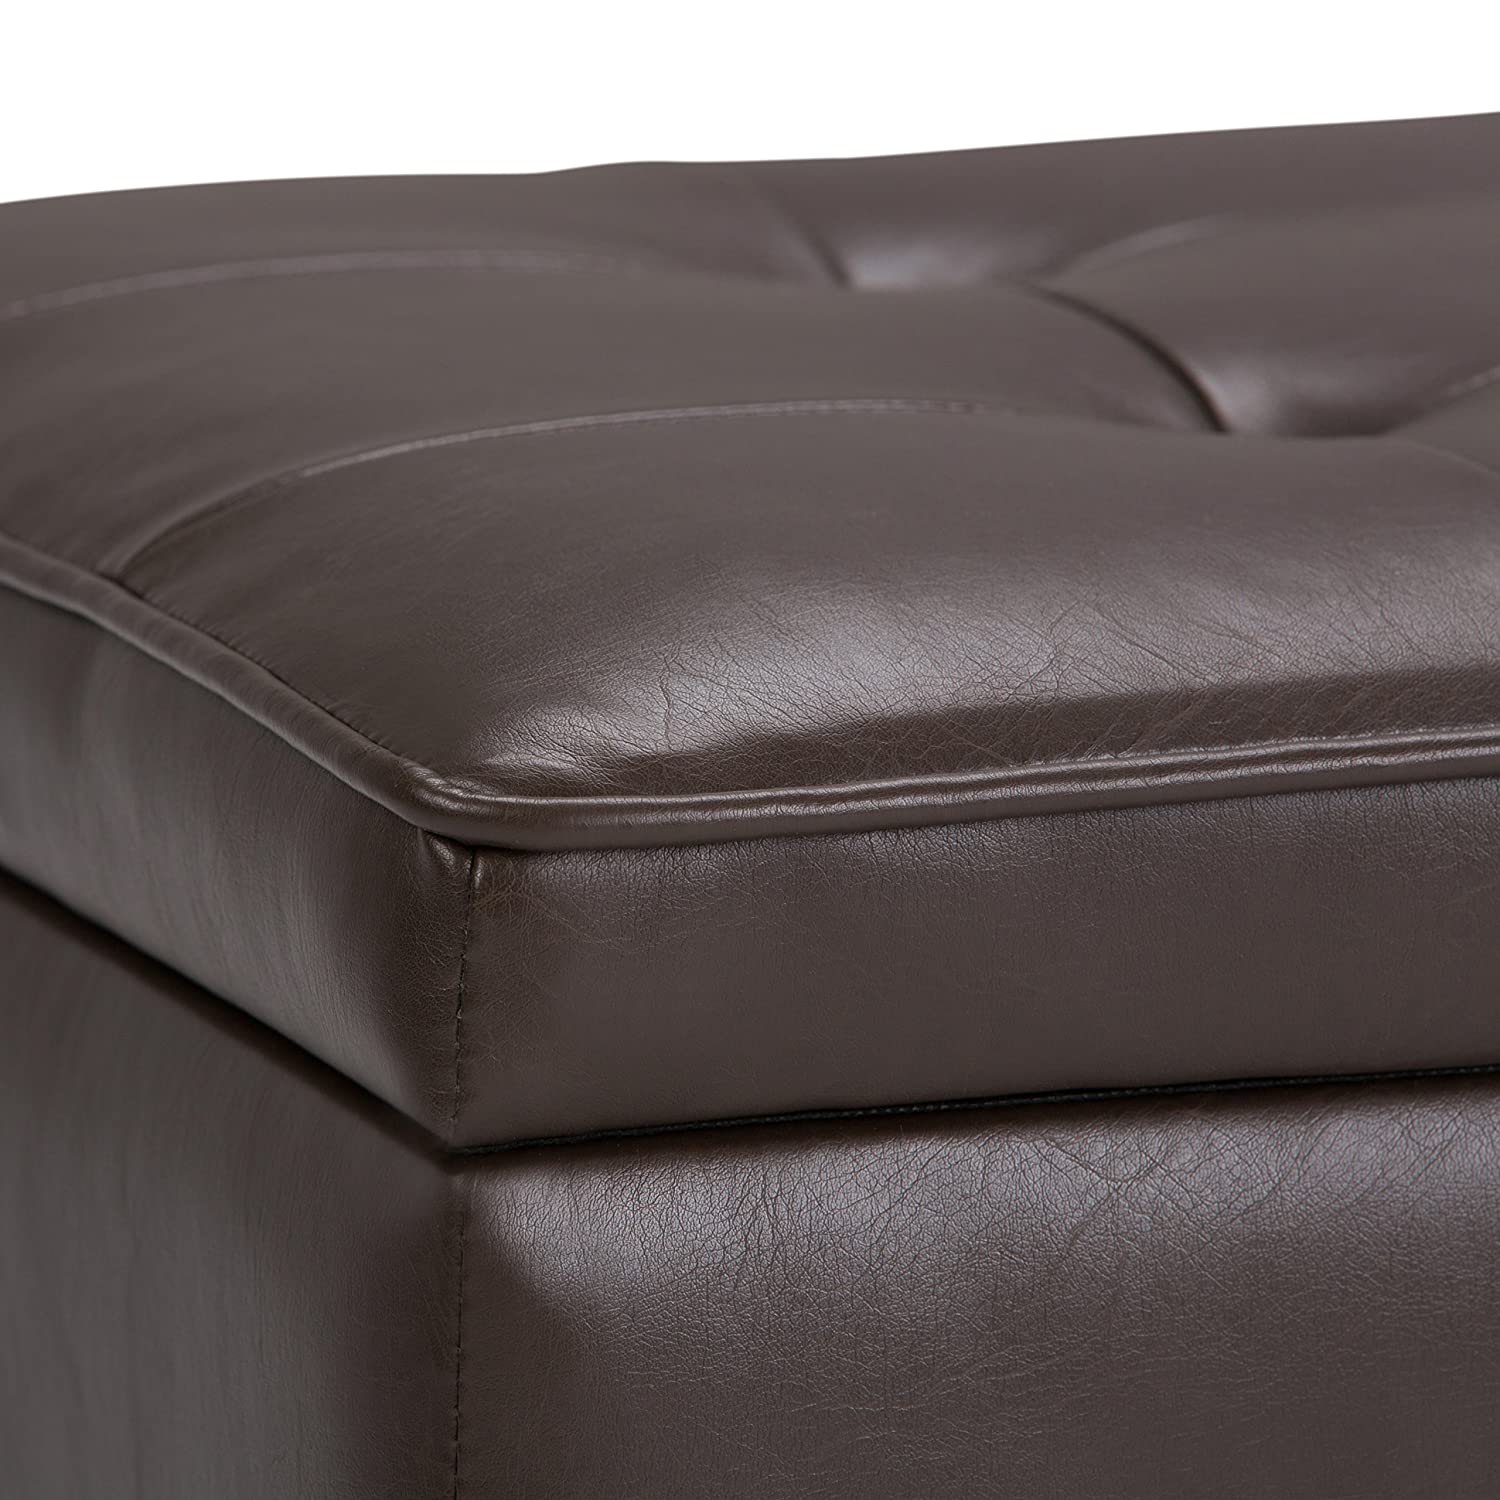 Simpli Home AXCCOS-OTTBNCH-01-CBR Cosmopolitan 44 inch Wide Traditional Rectangle Storage Ottoman Bench with Open Bottom in Chocolate Brown Faux Leather